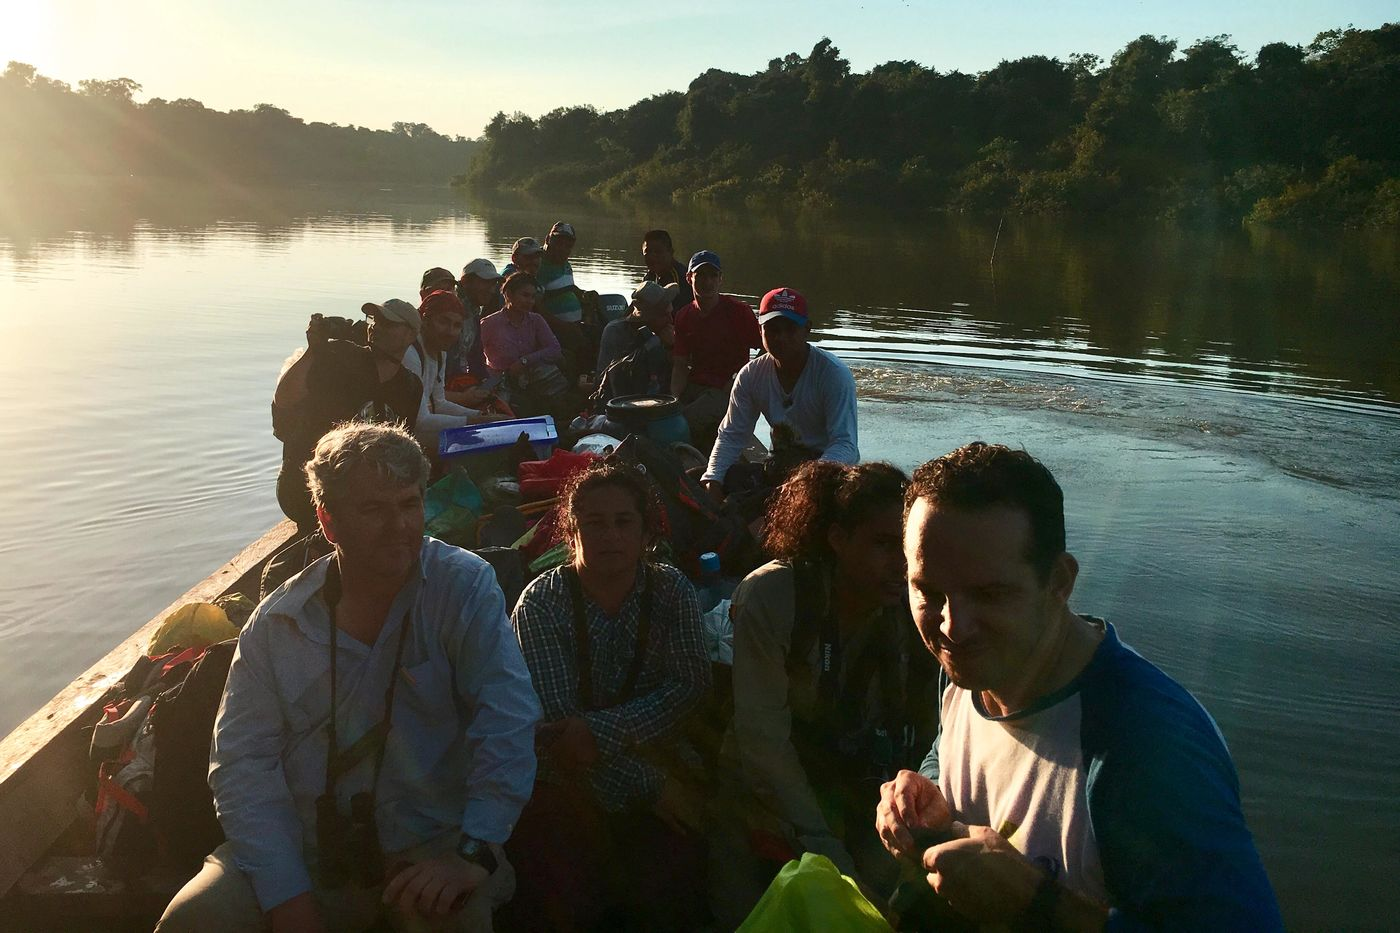 A group of people in a narrow, wooden boat on a wide river with trees lining both sides. The sun is very bright in the upper left corner.